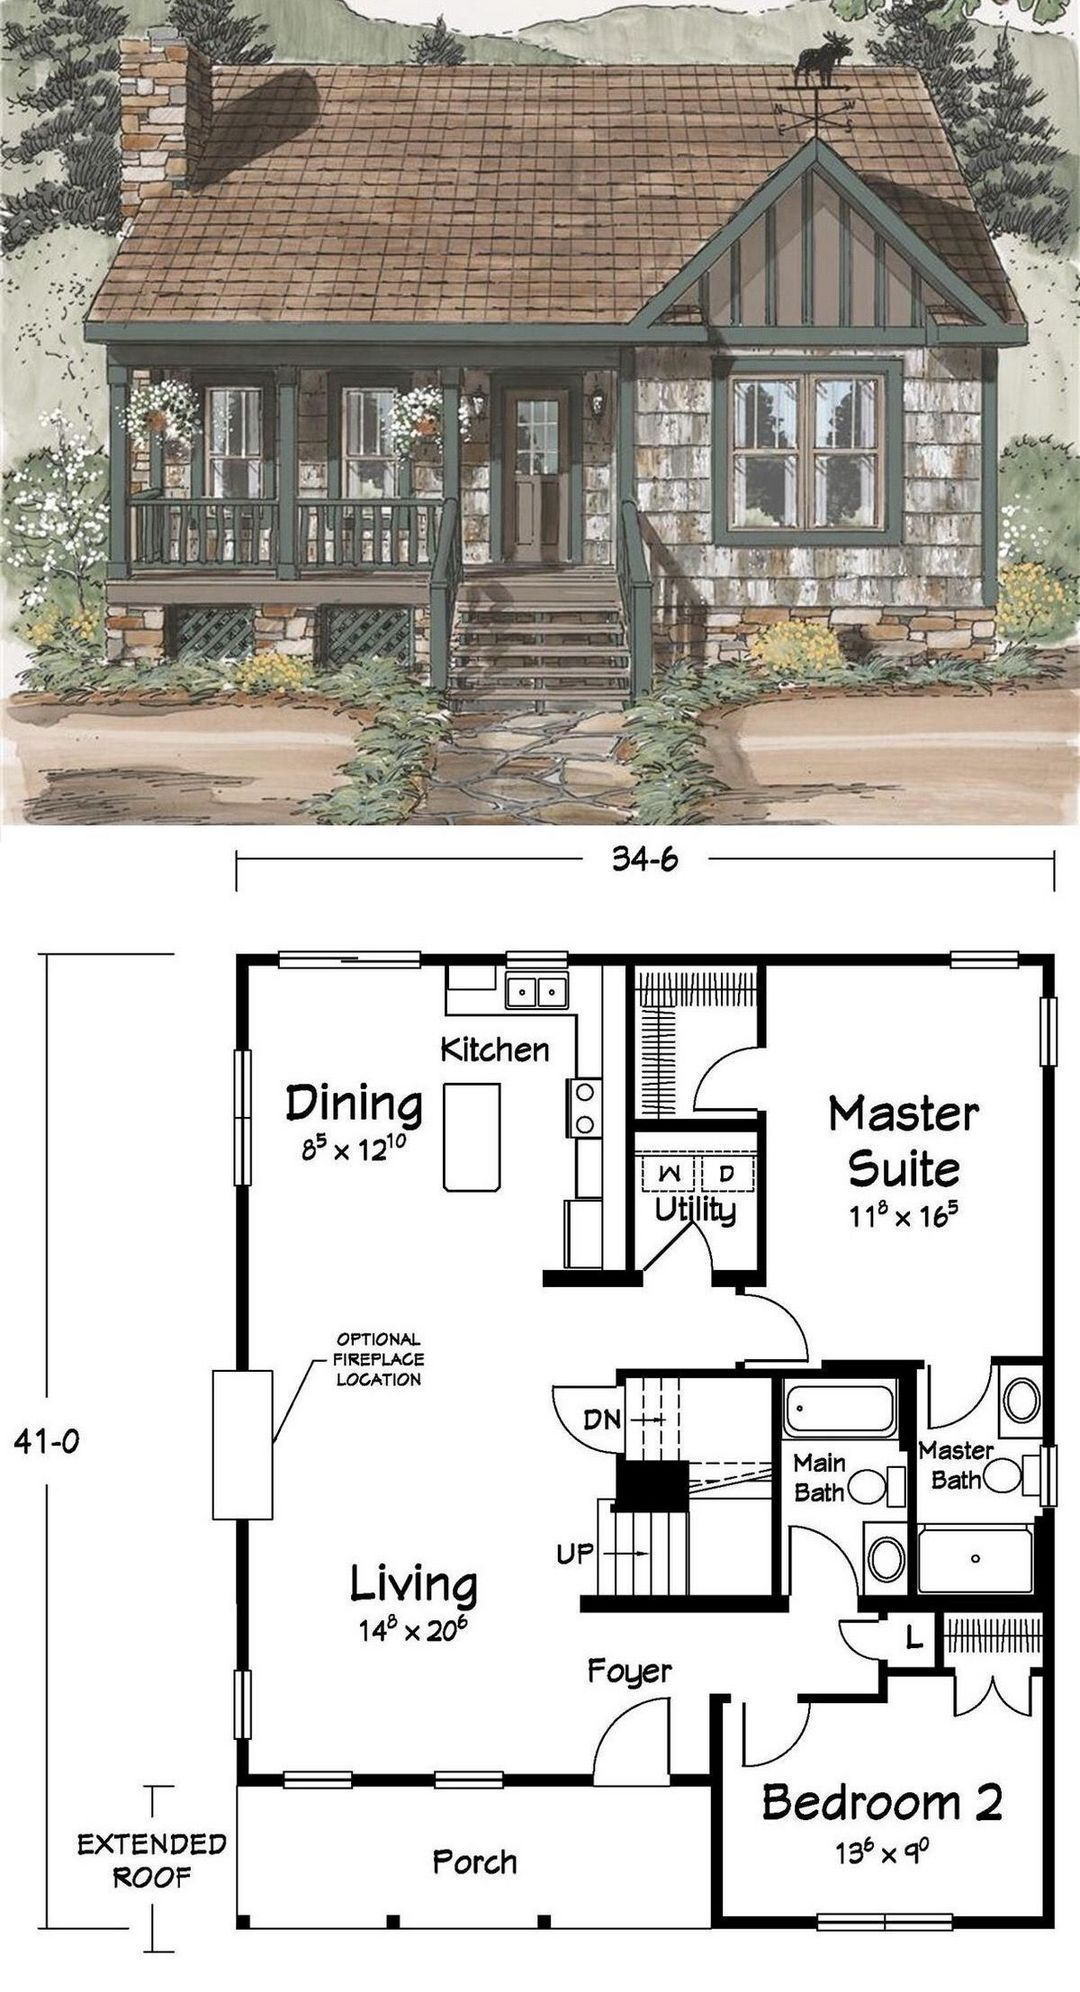 27 Barndominium Floor Plans Ideas To Suit Your Budget Gallery Sepedaku Cottage Plan Sims House Plans House Layouts